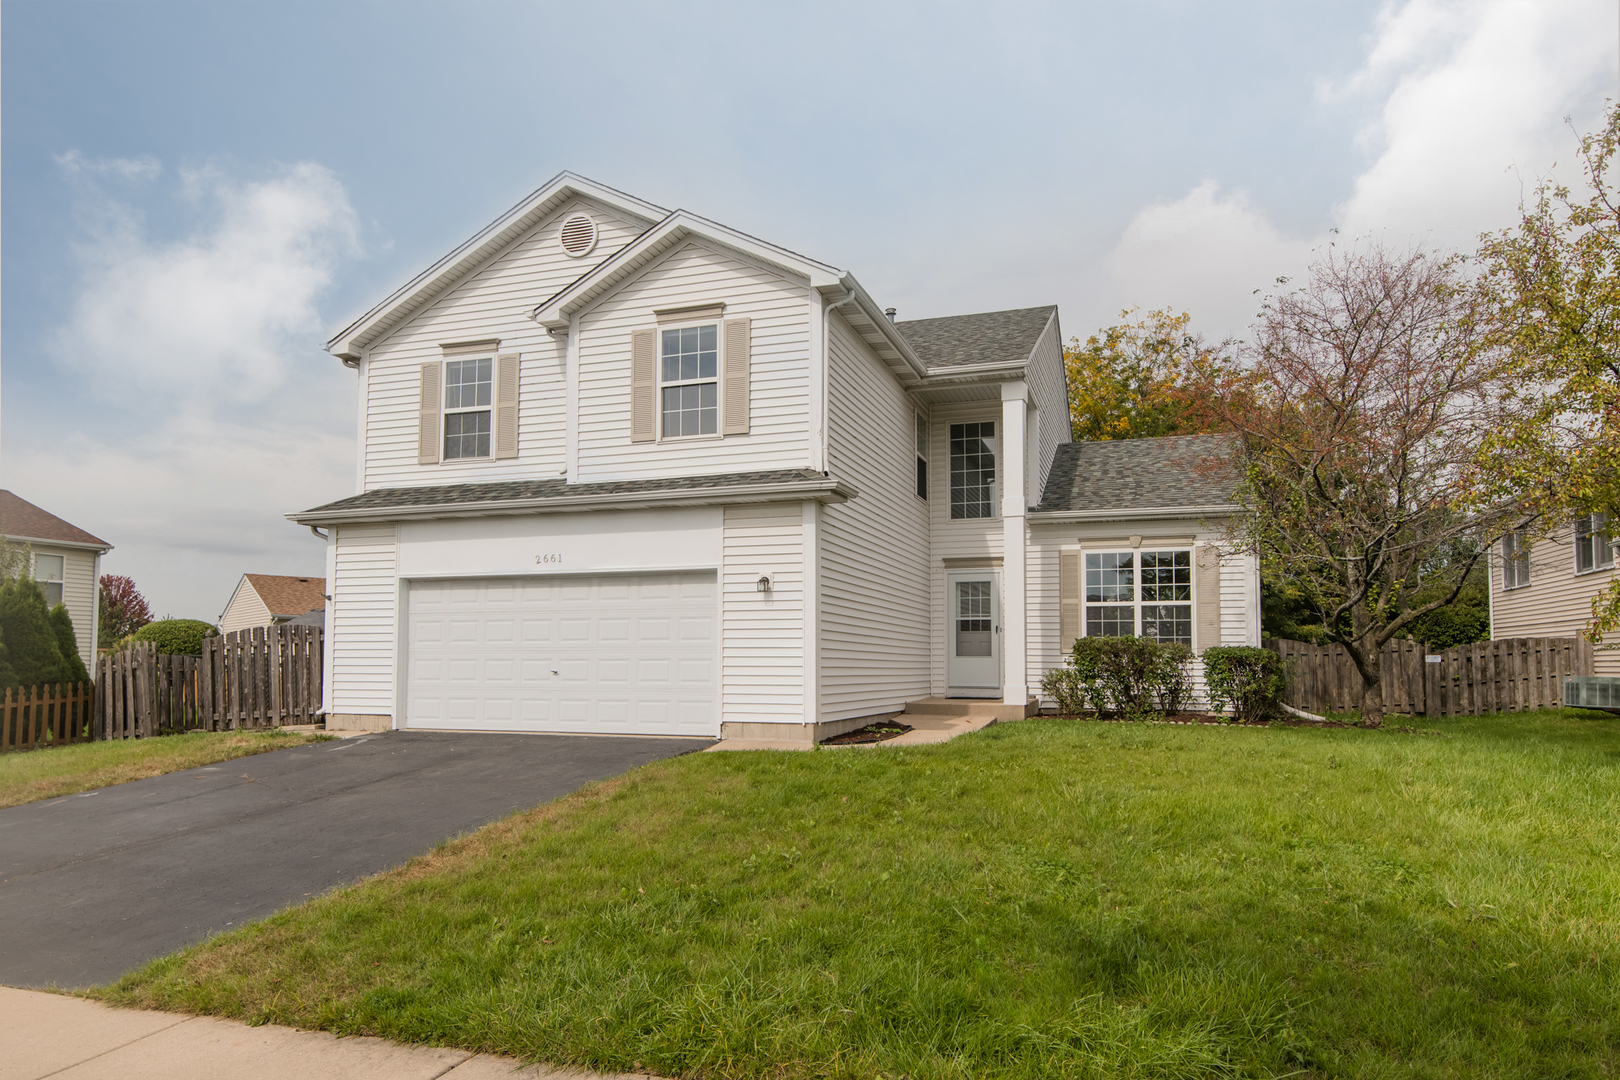 Photo for 2661 Melbourne Lane, Lake In The Hills, IL 60156 (MLS # 10632841)